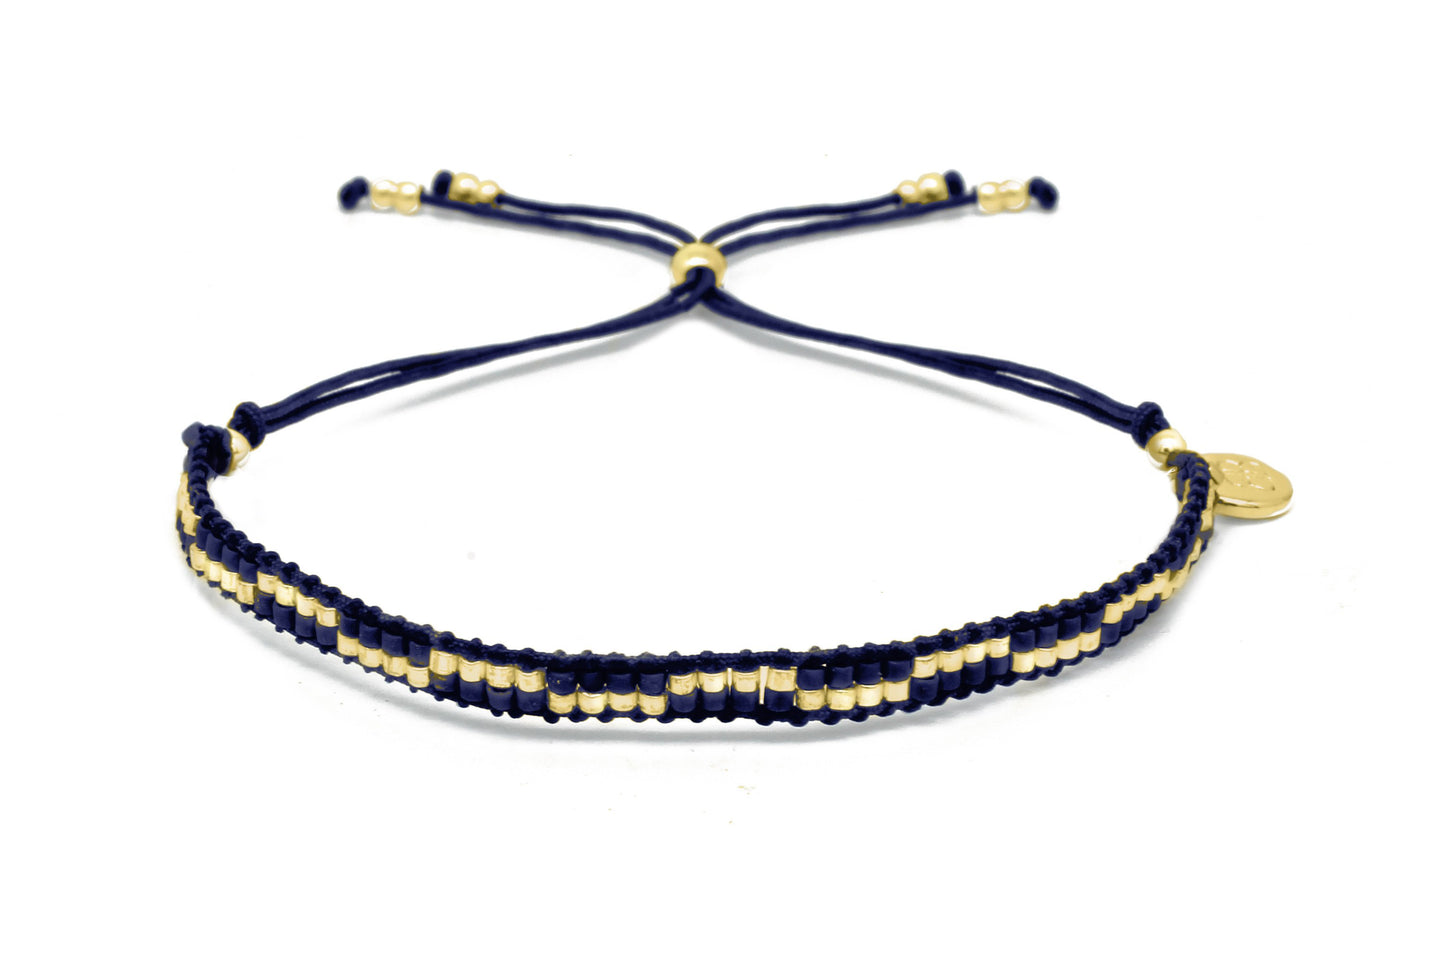 Carnival Navy Blue & Gold 2 Row Beaded Friendship Bracelet